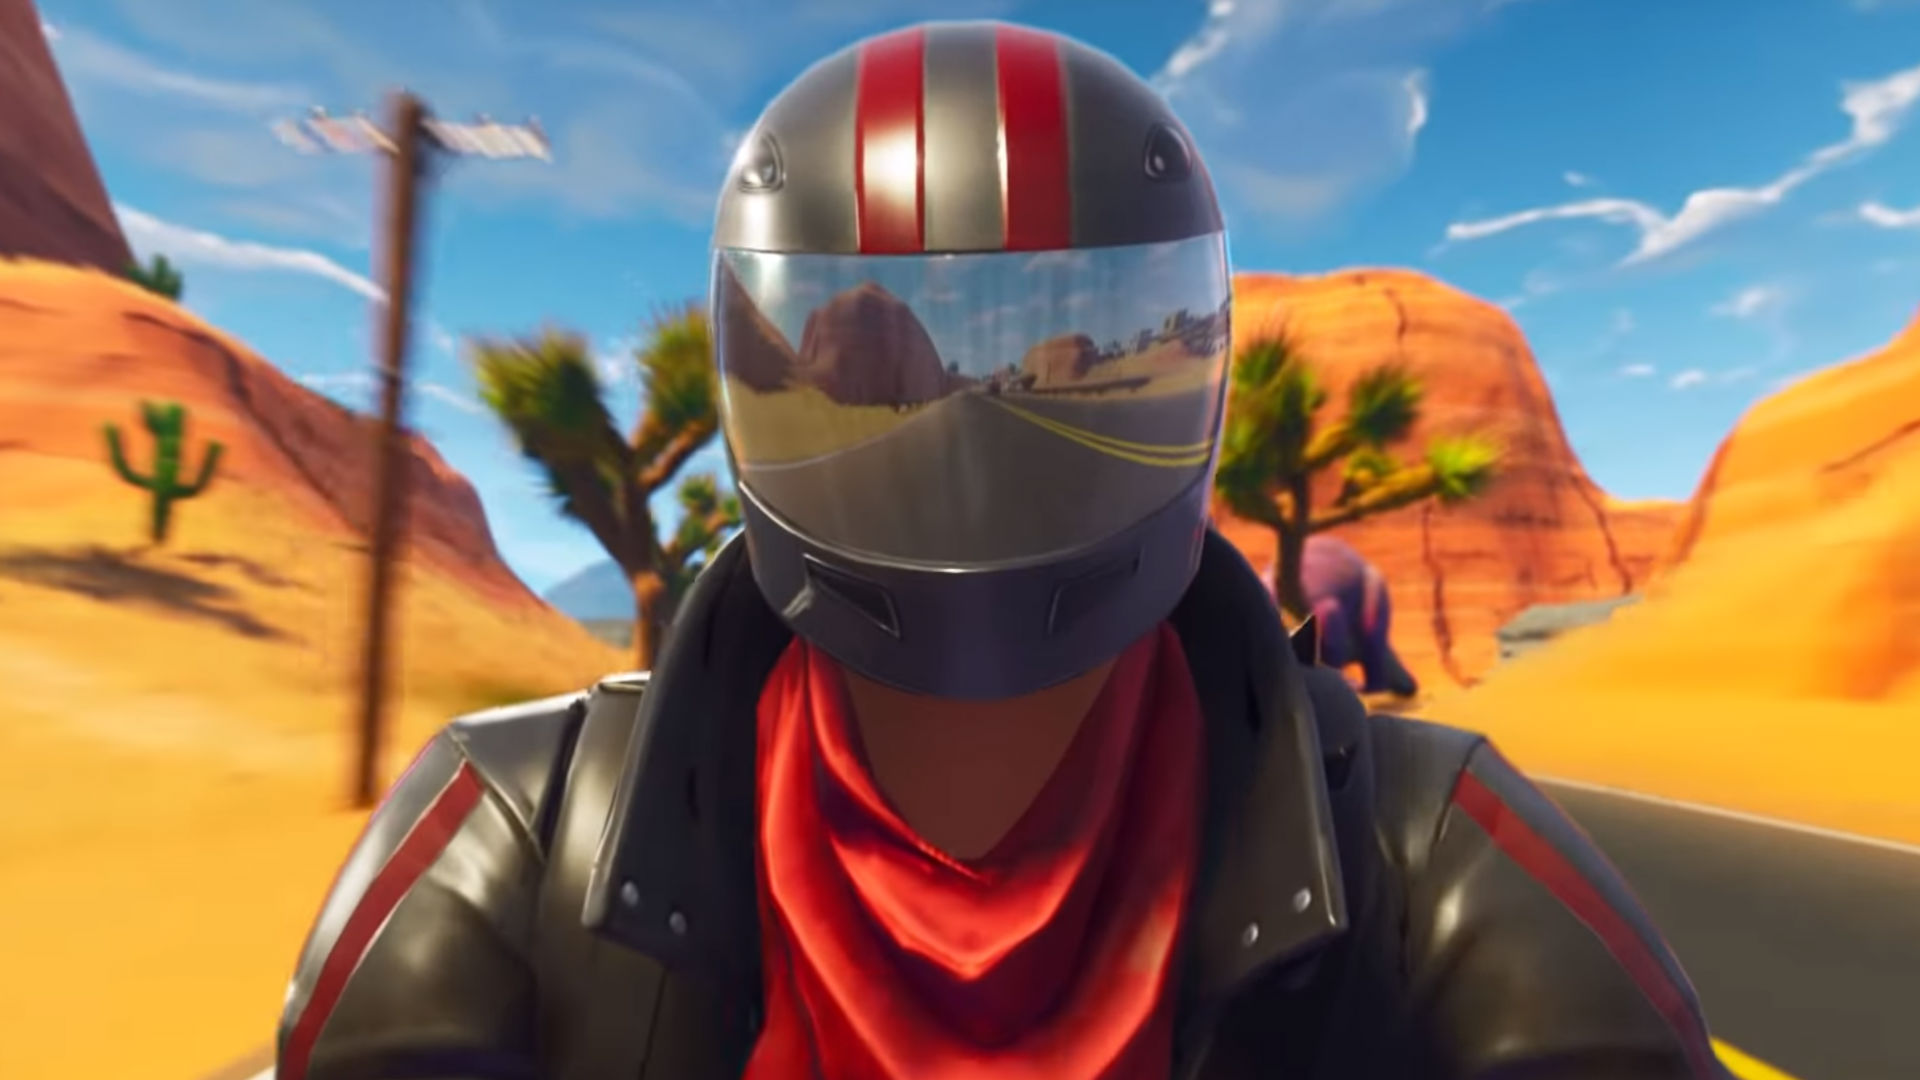 Fortnite Client fortnite steam: how to get the battle royale game on valve's